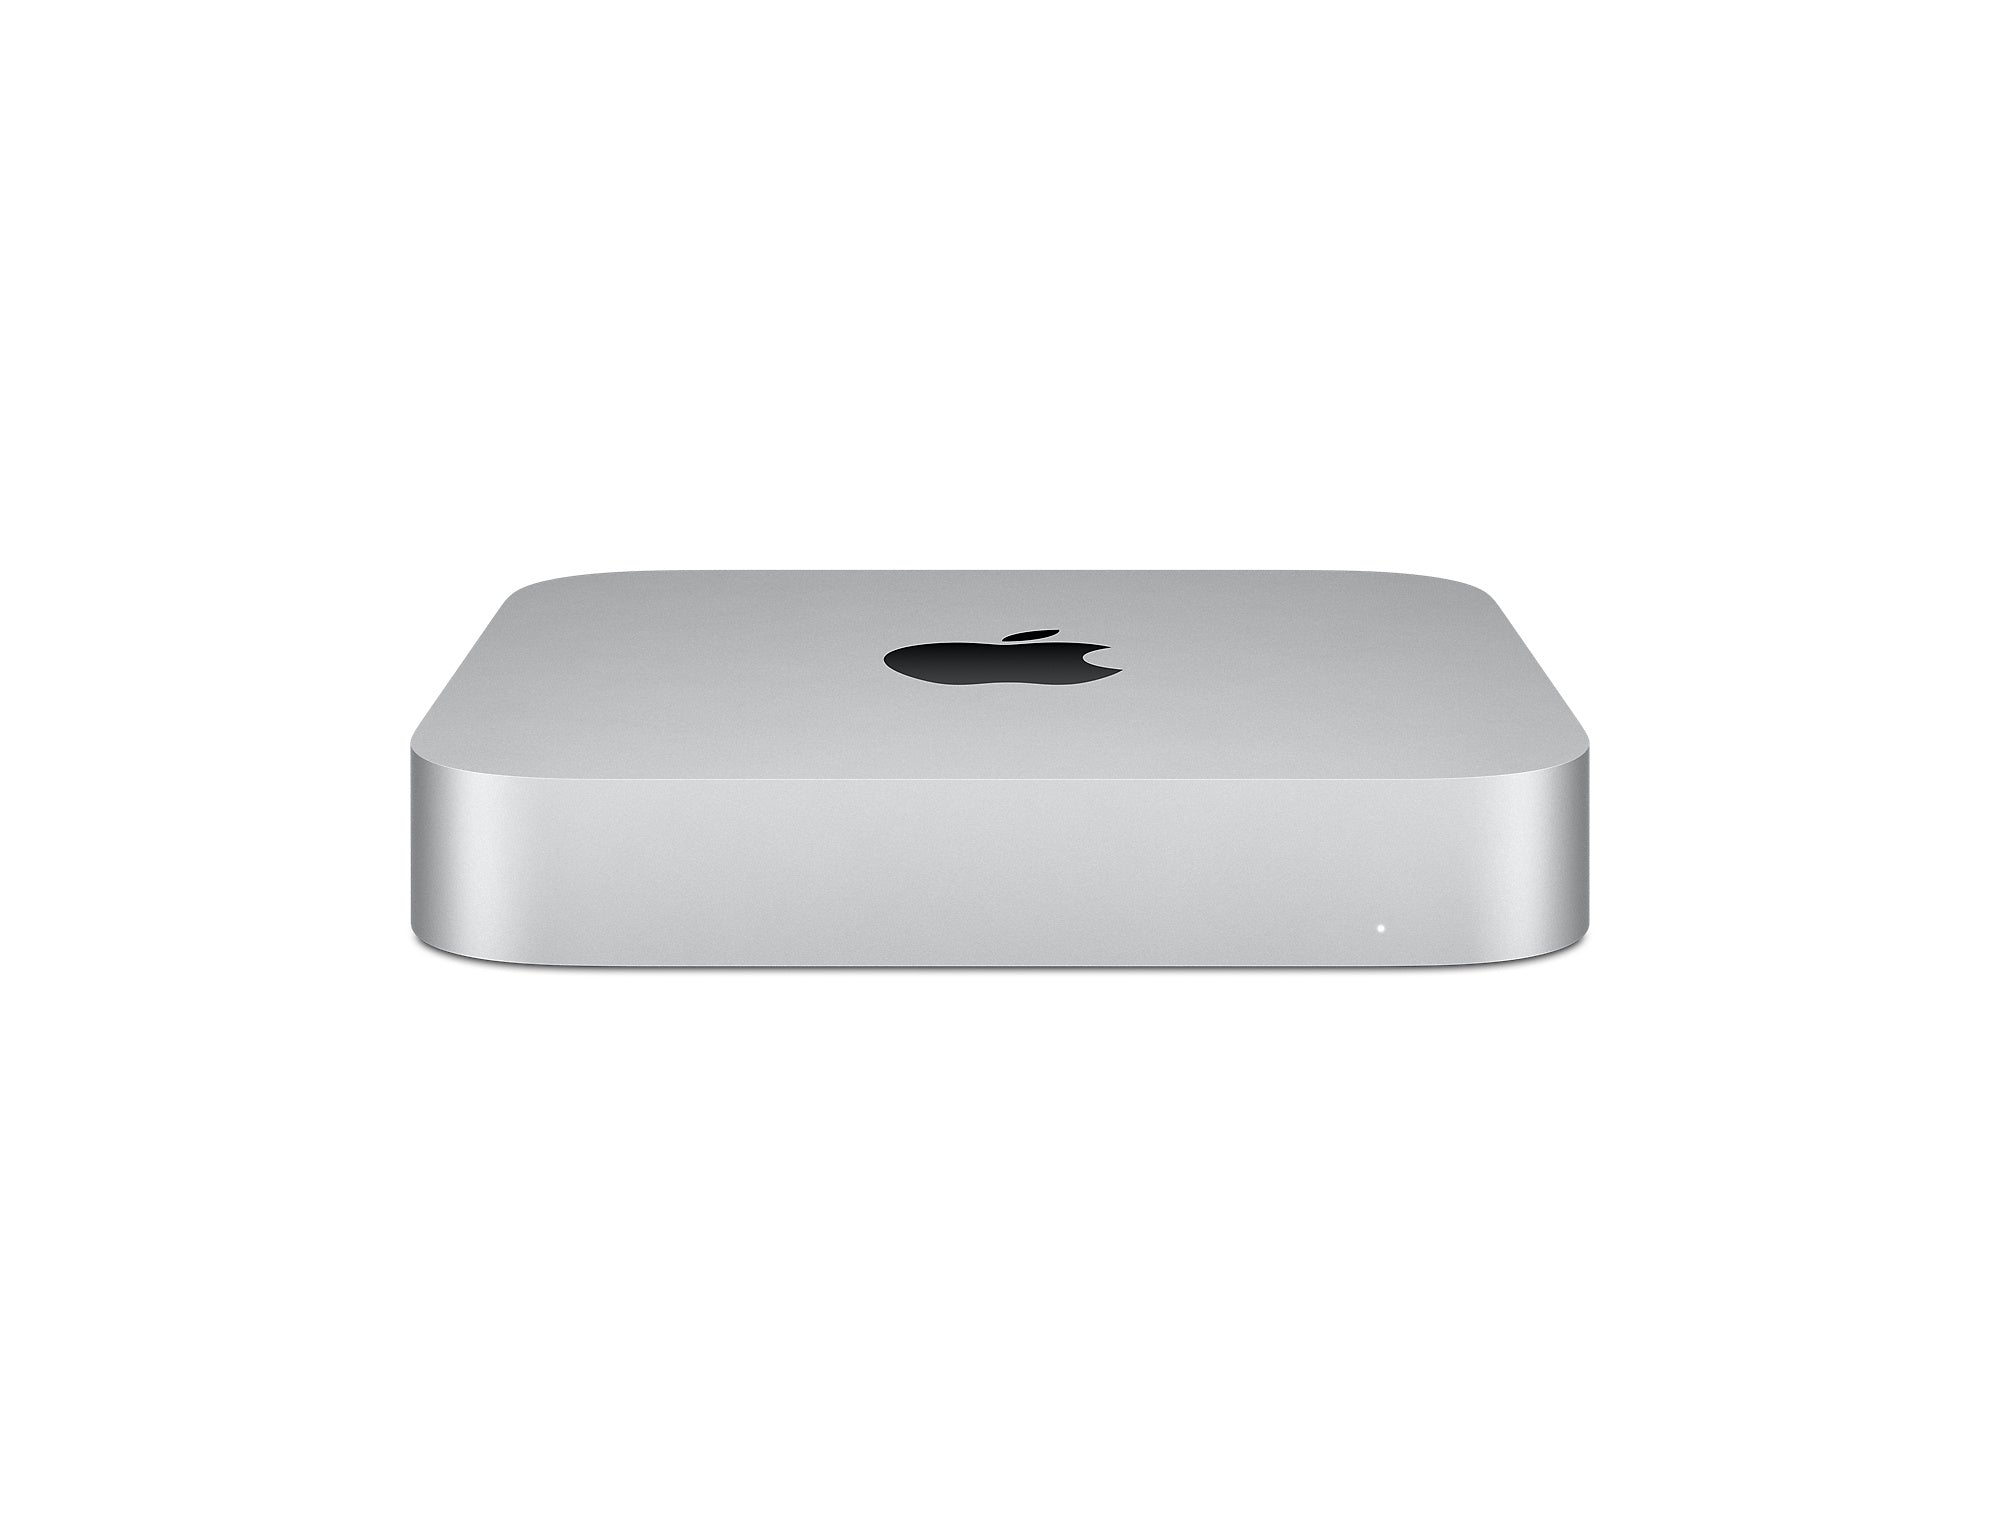 Mac mini: Apple M1 chip with 8 core CPU and 8 core GPU, 256GB SSD